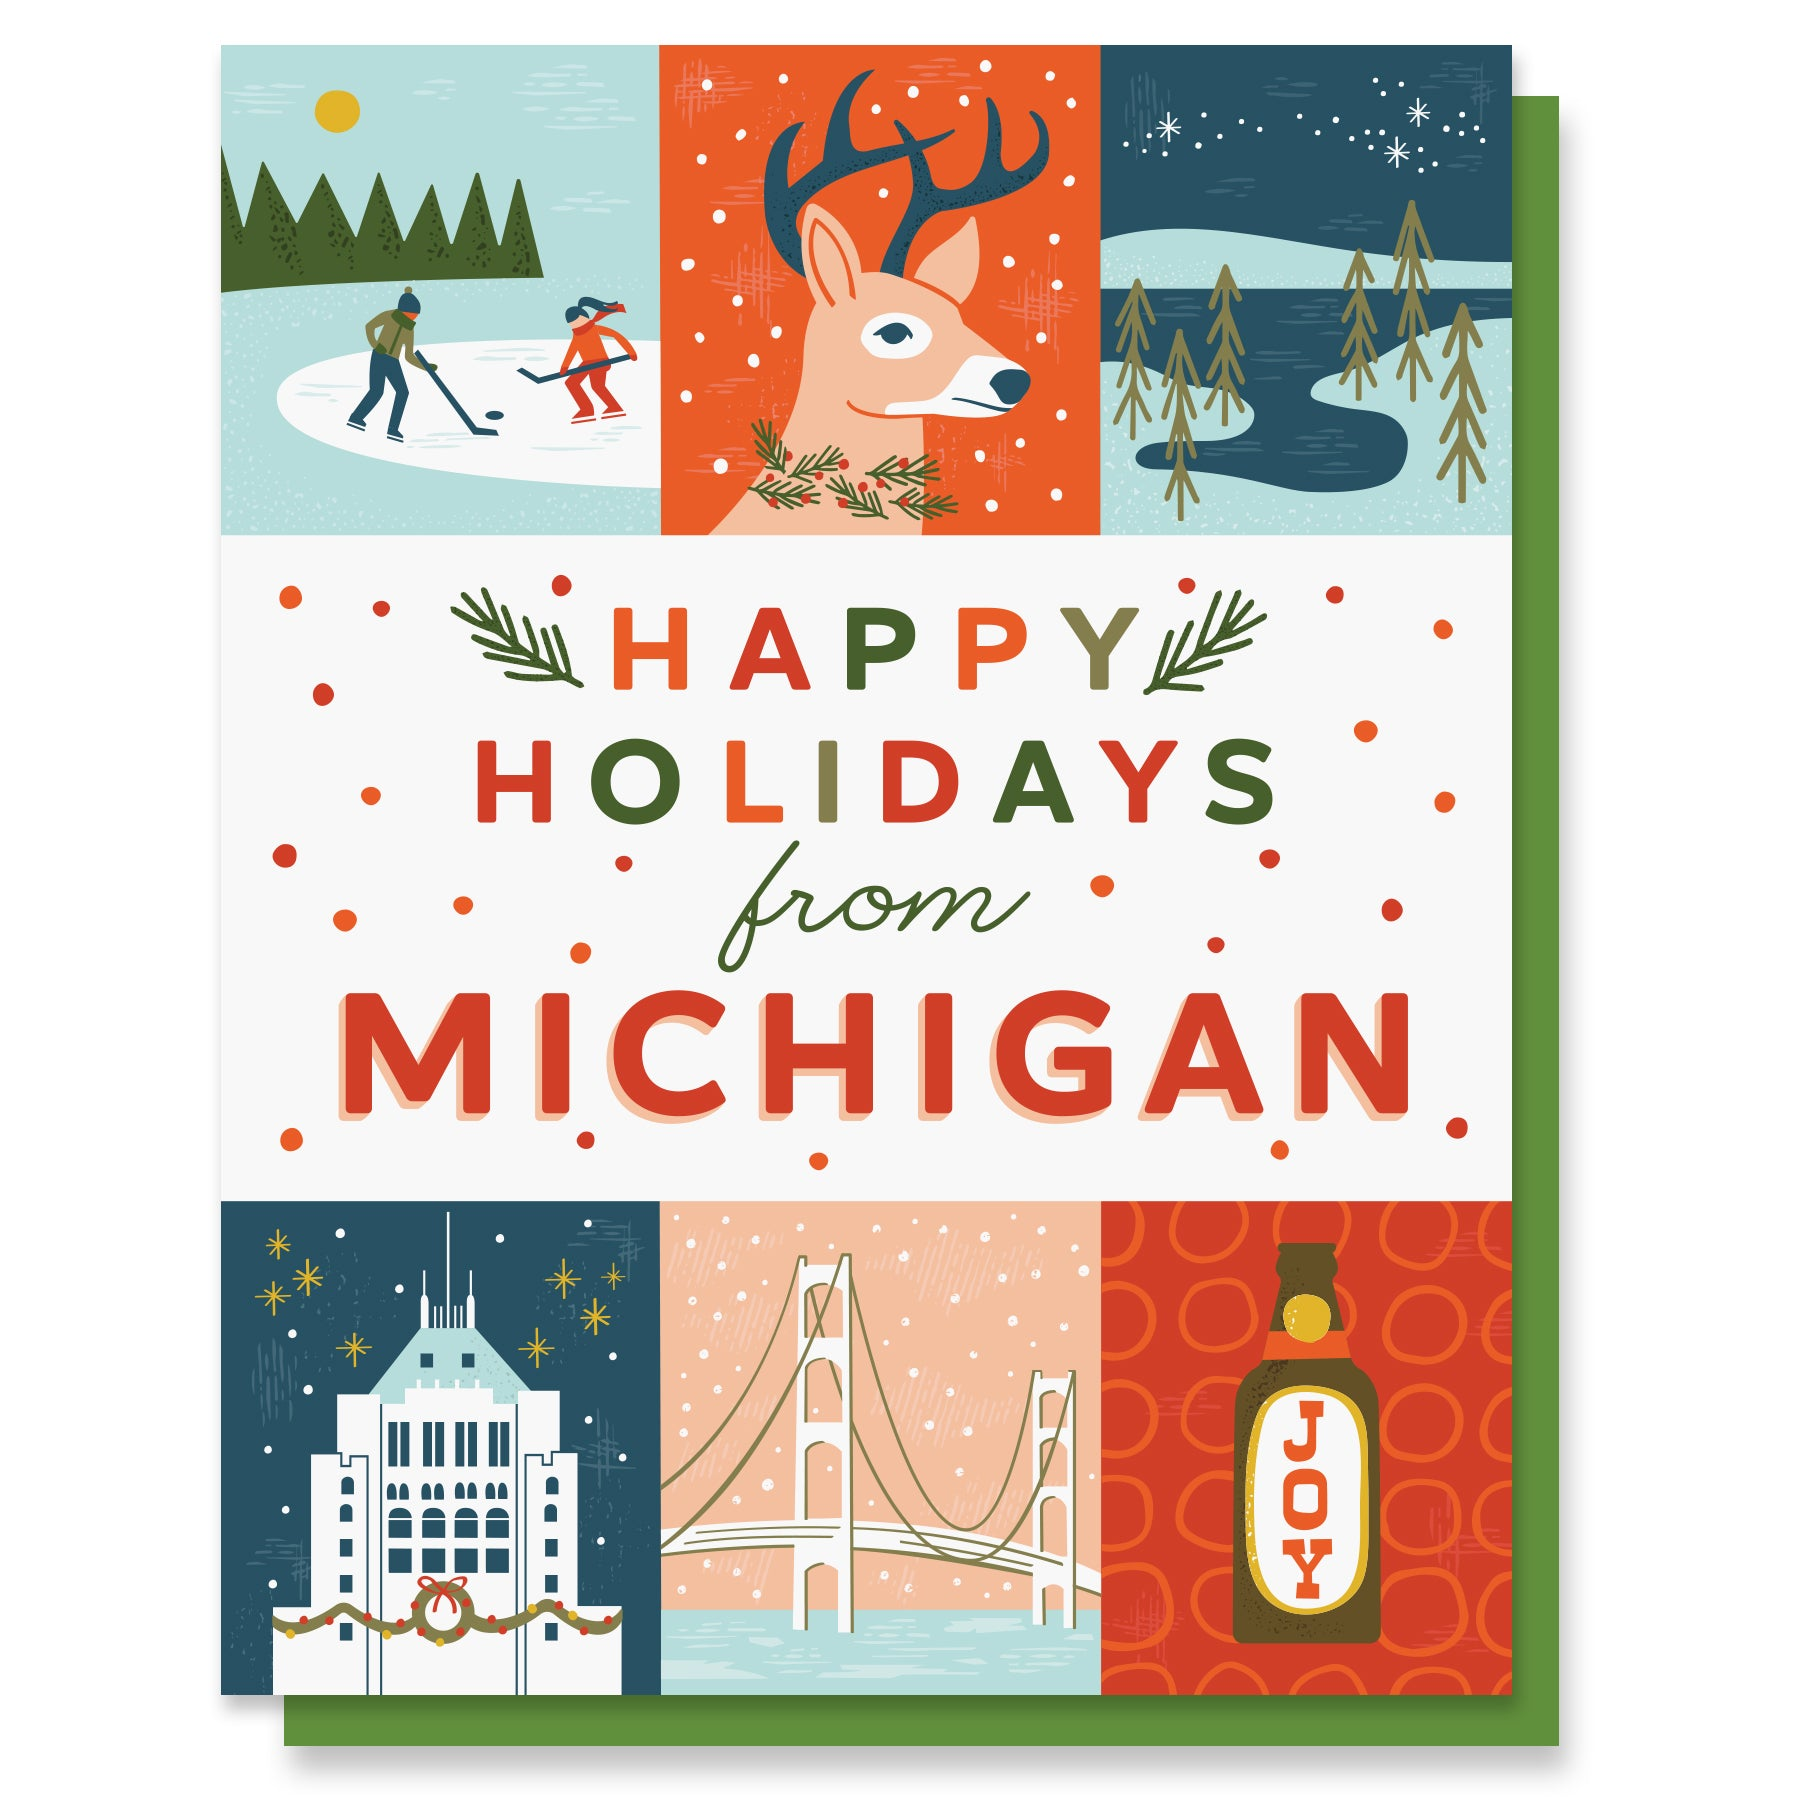 Michigan Holiday Grid Card